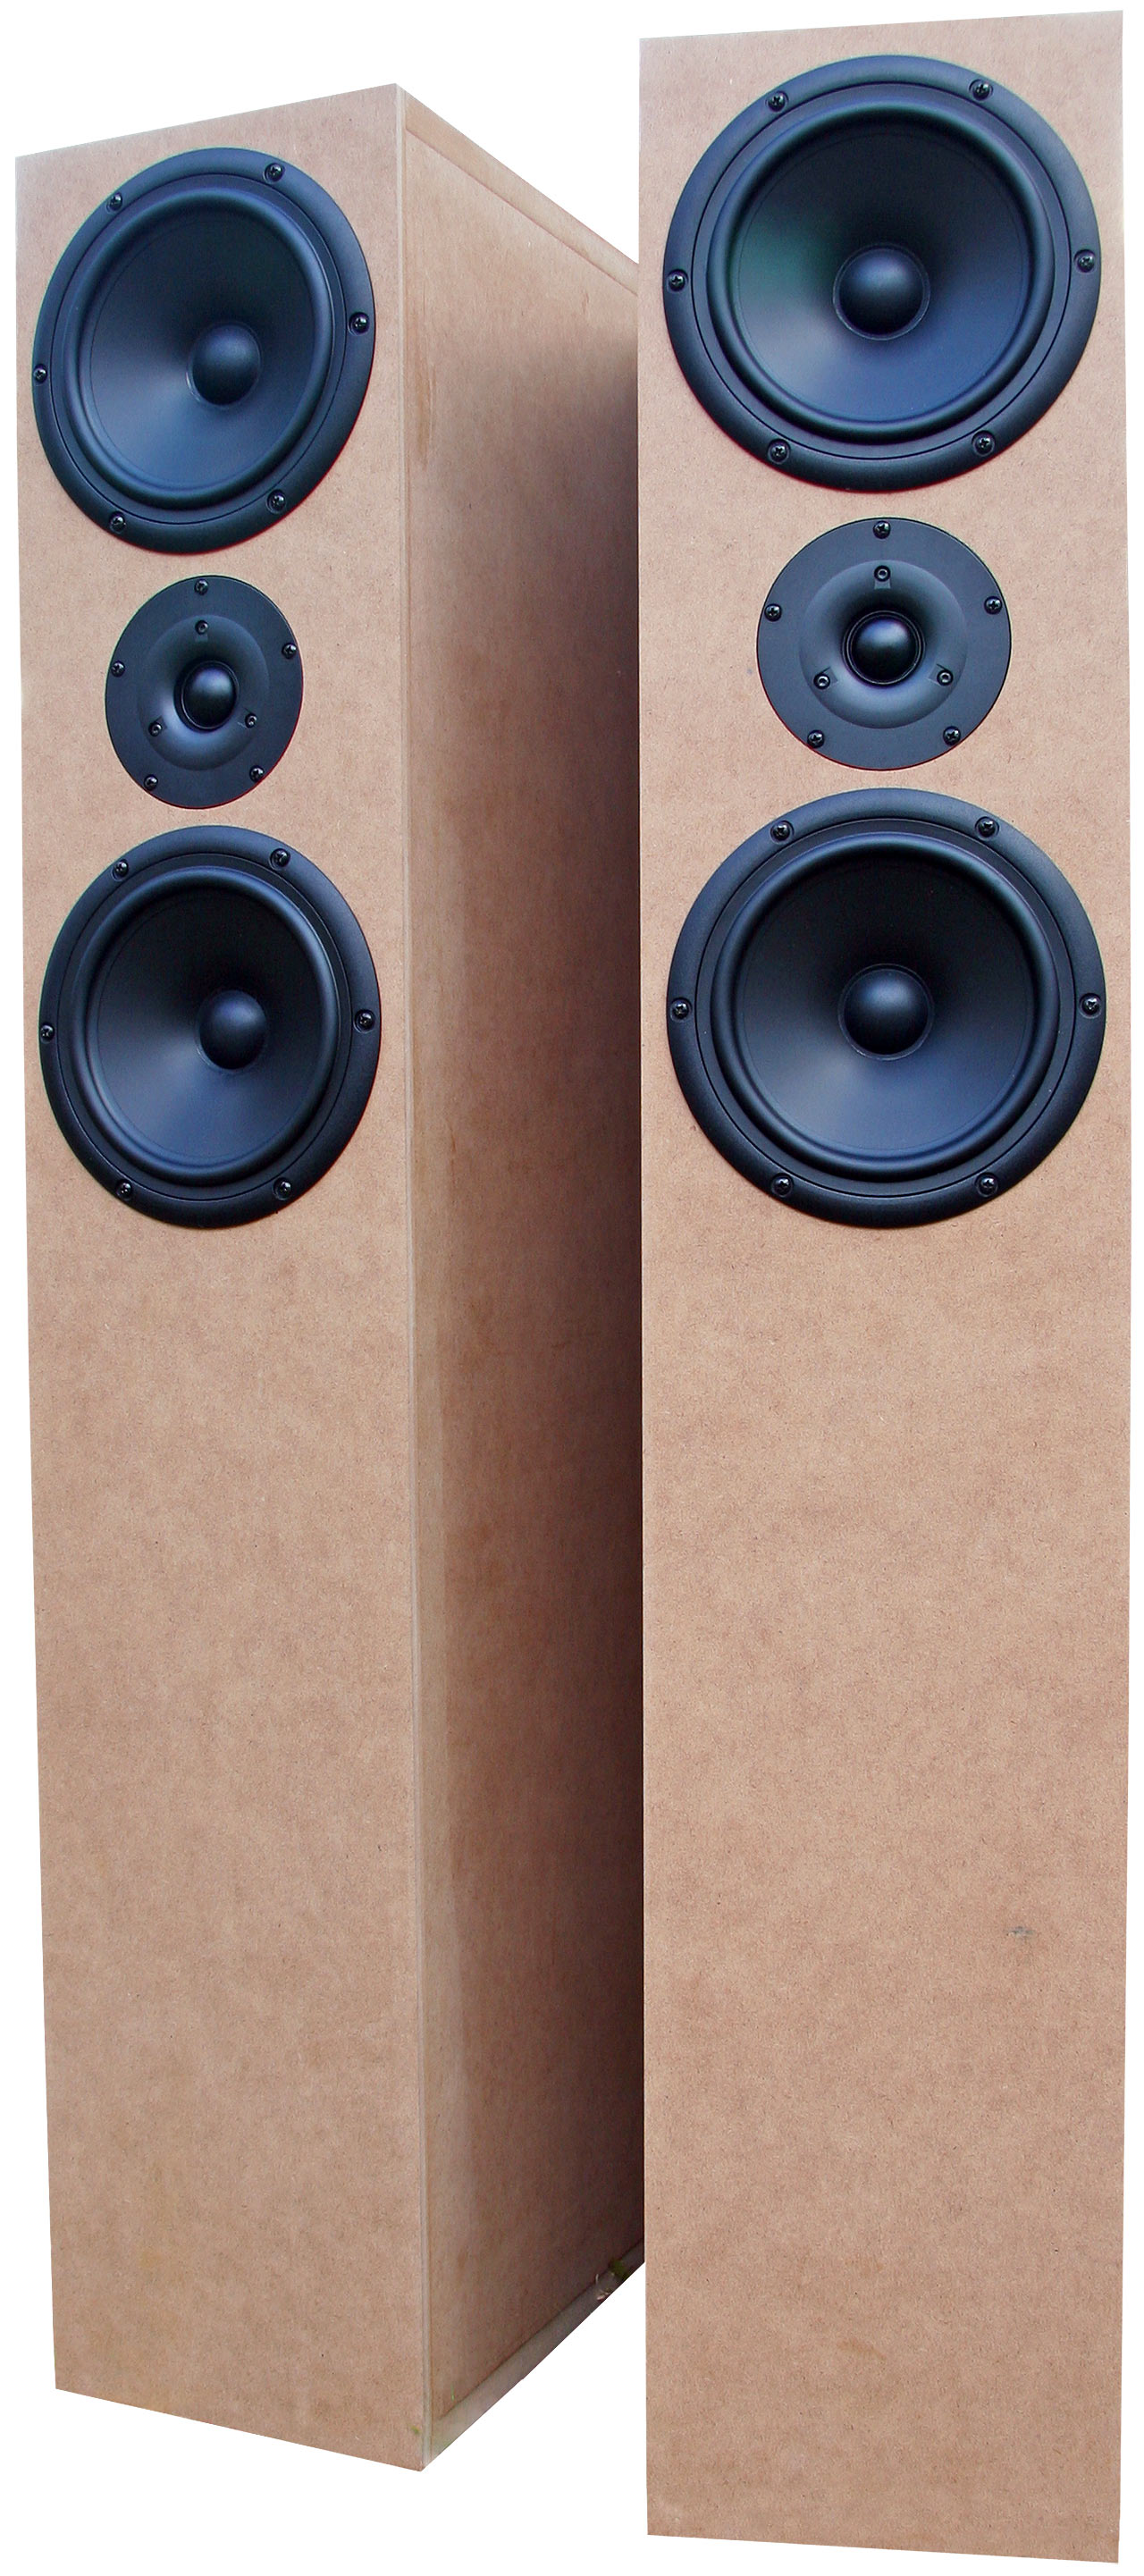 Home Tower Speaker Design